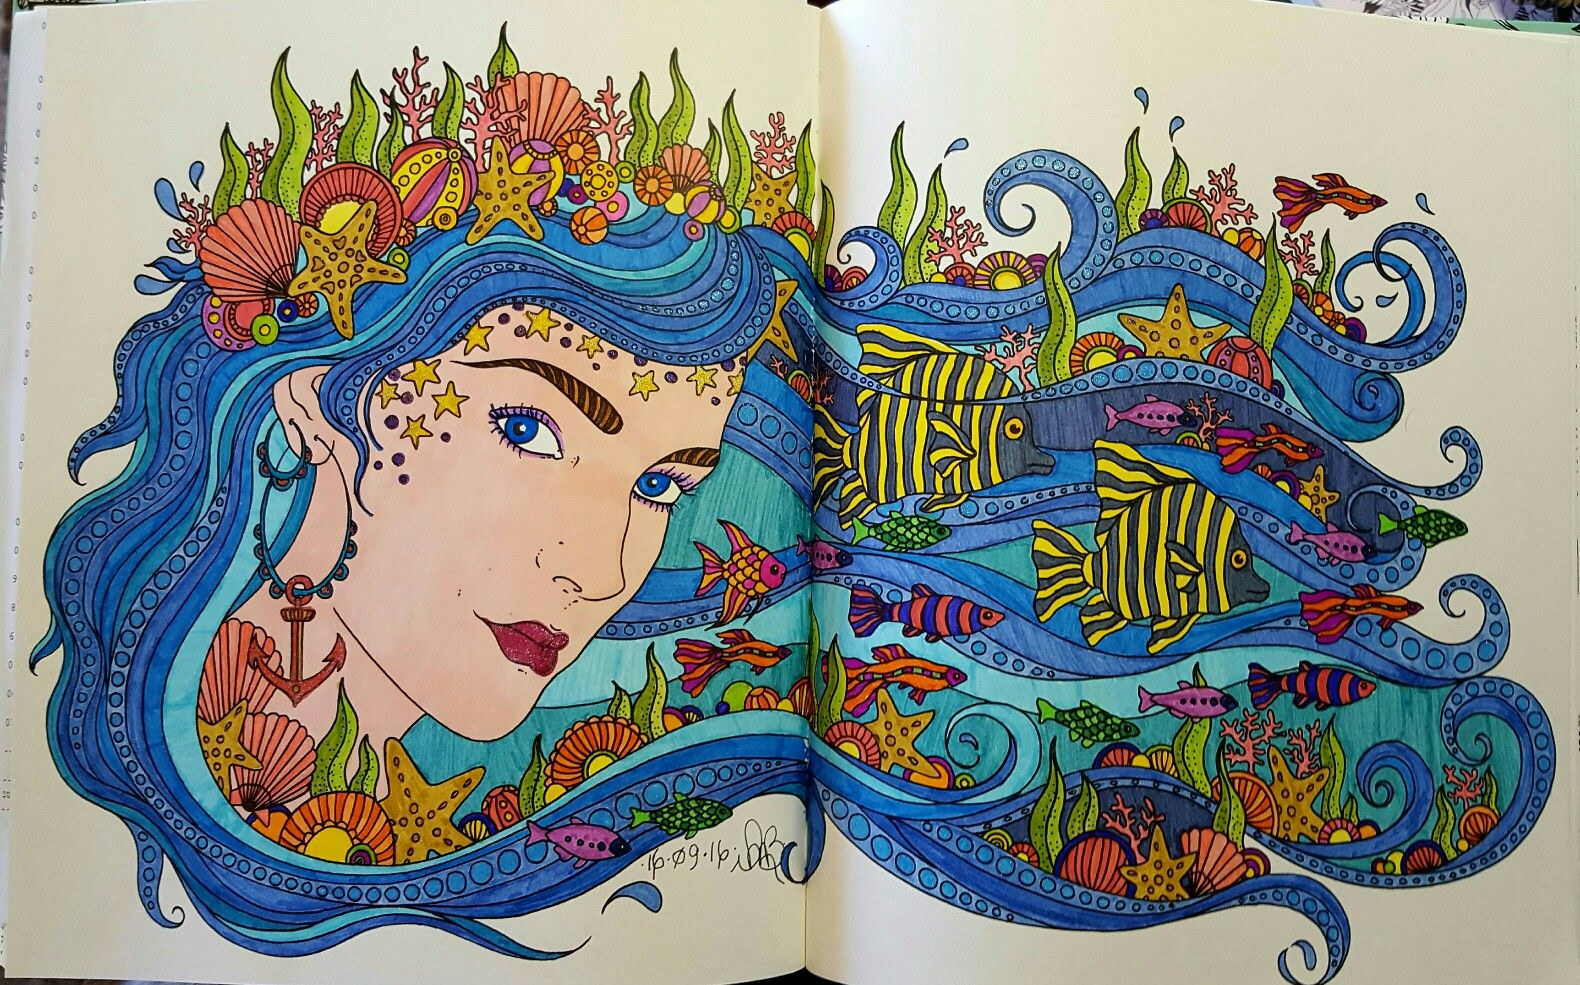 From Hanna Karlzon's Daydreams Coloring Book. Coloured by me.